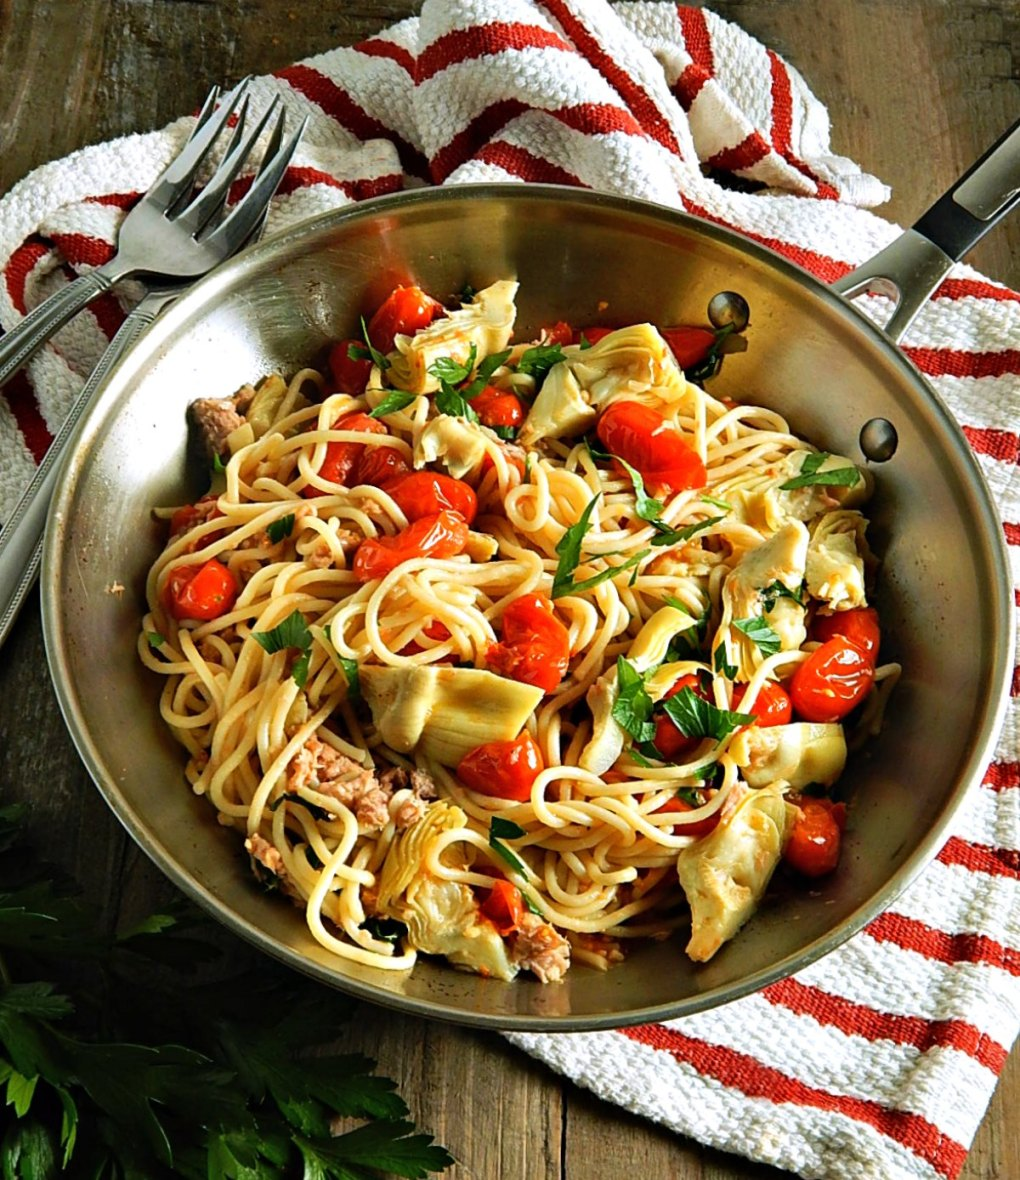 Pasta with Tuna, Tomatoes, Artichokes